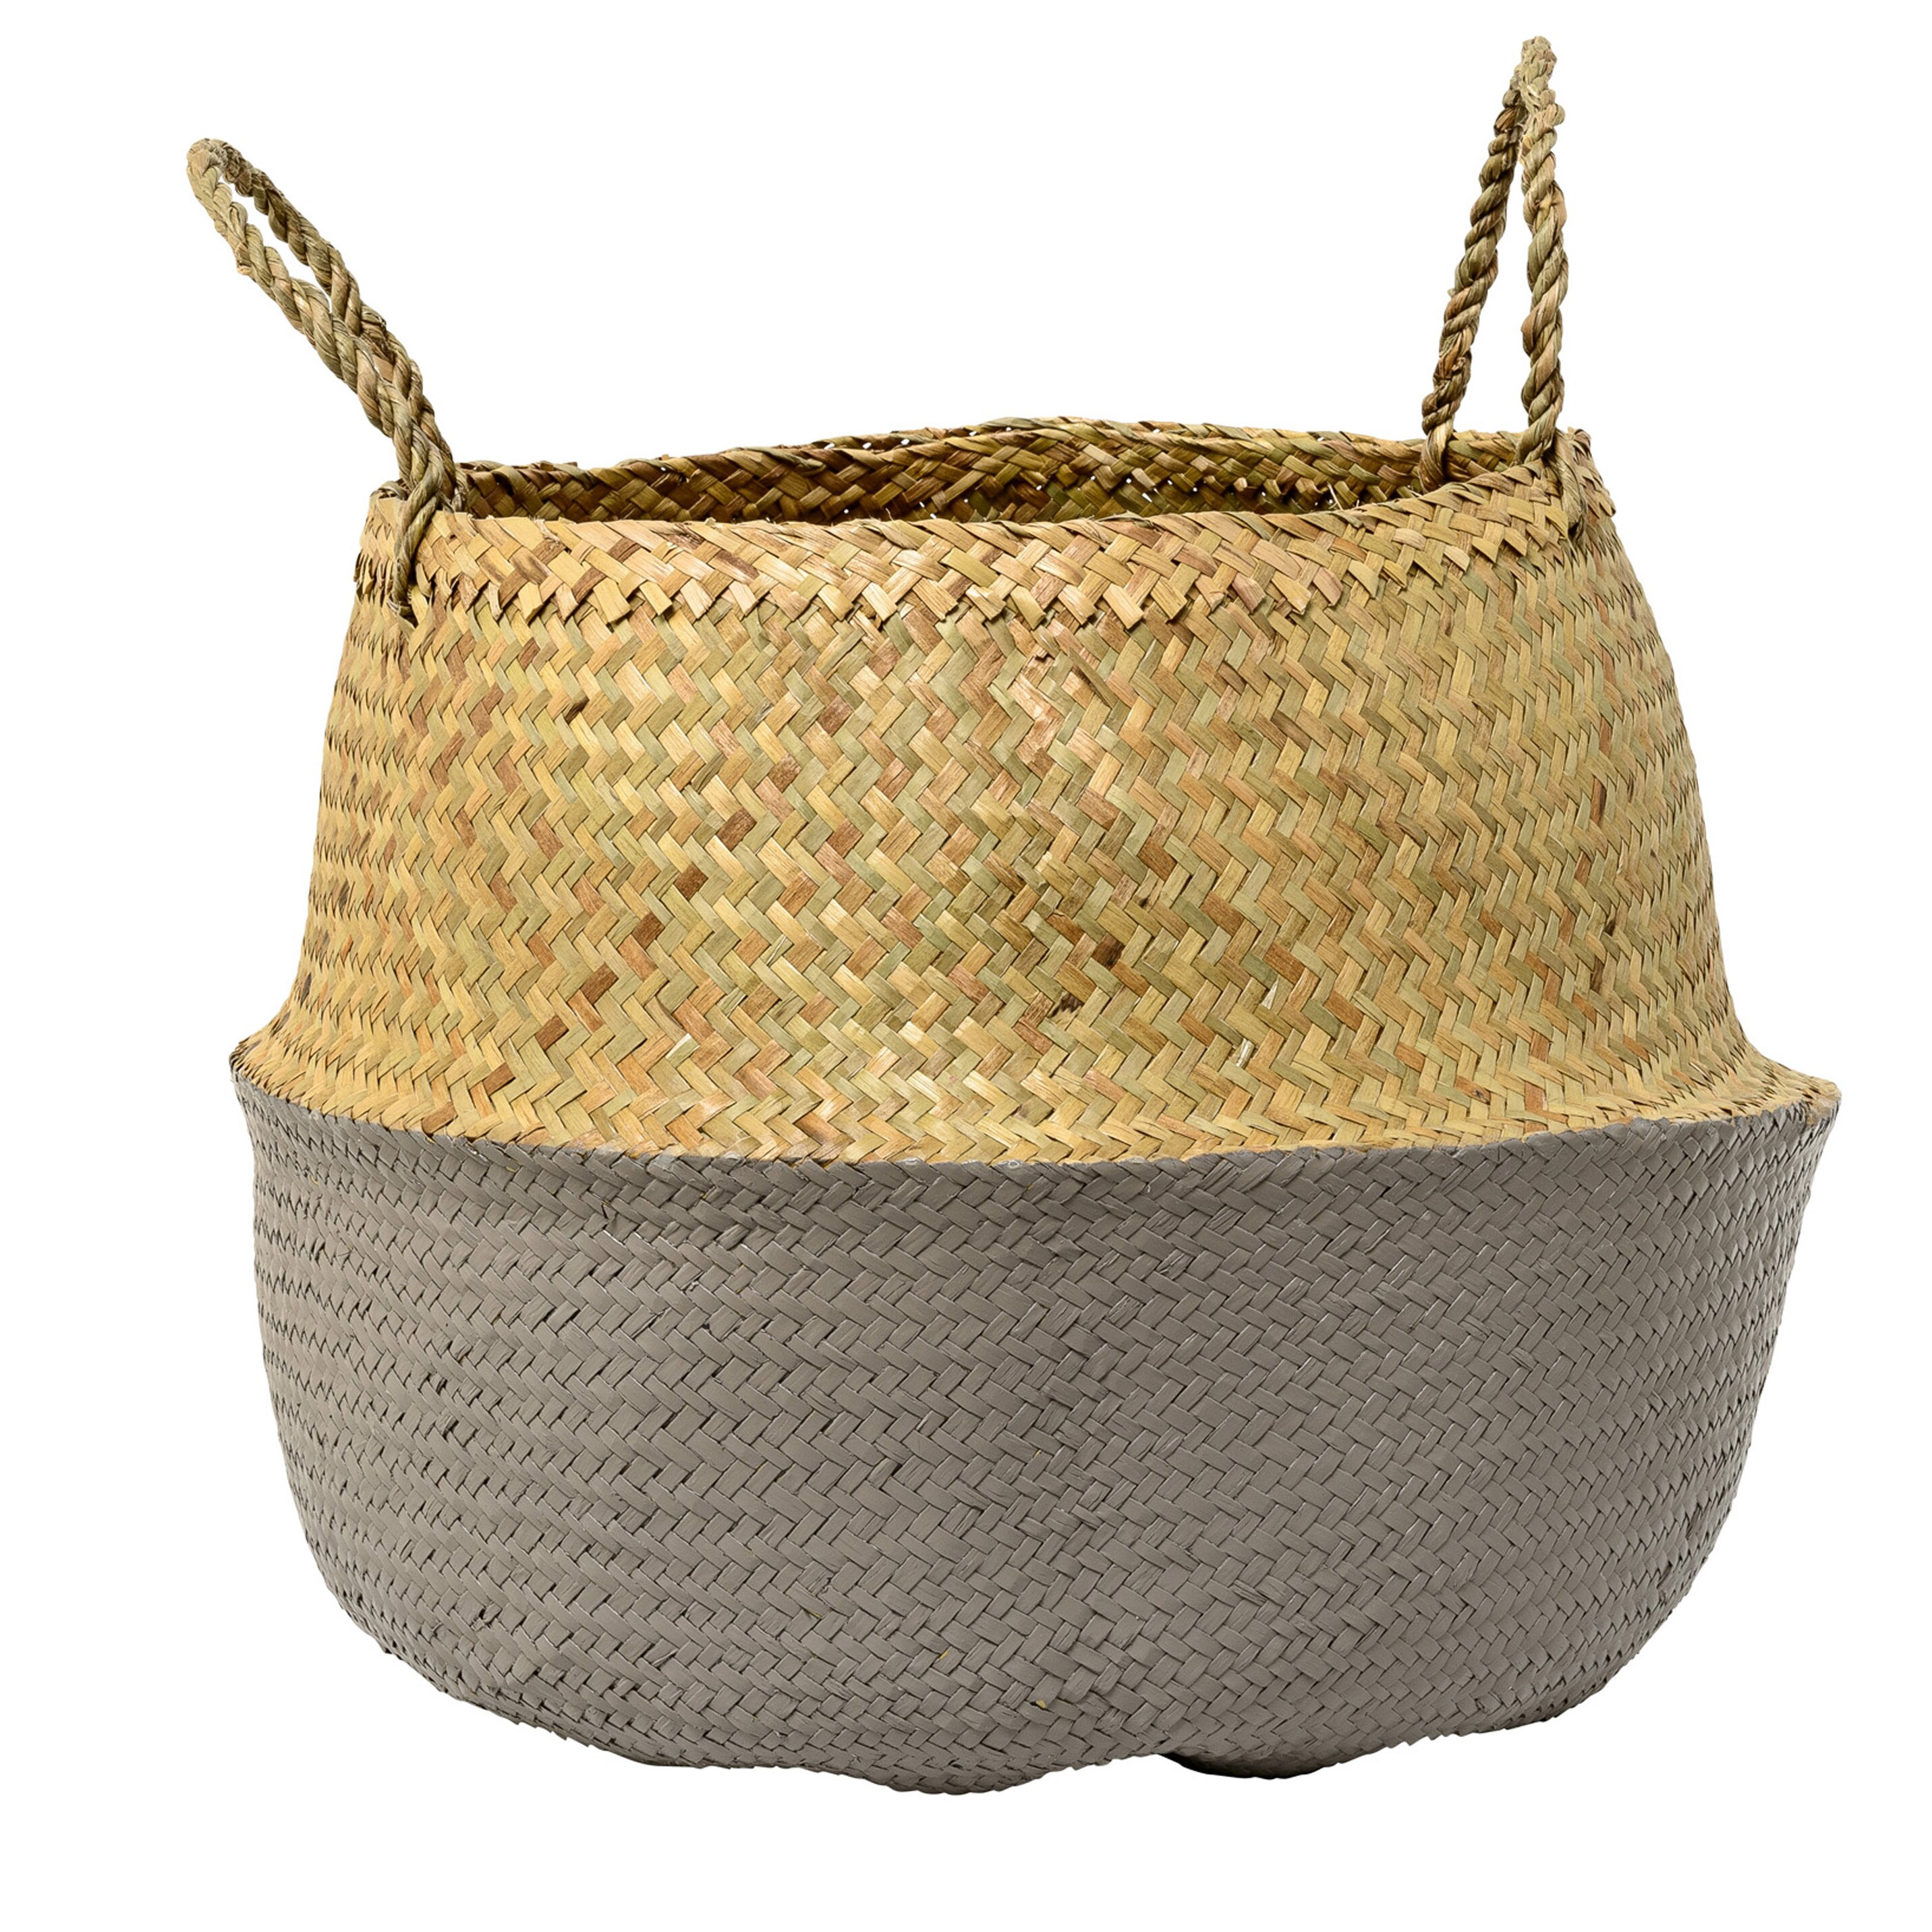 White wicker baskets with handle - Seagrass Basket With Handles